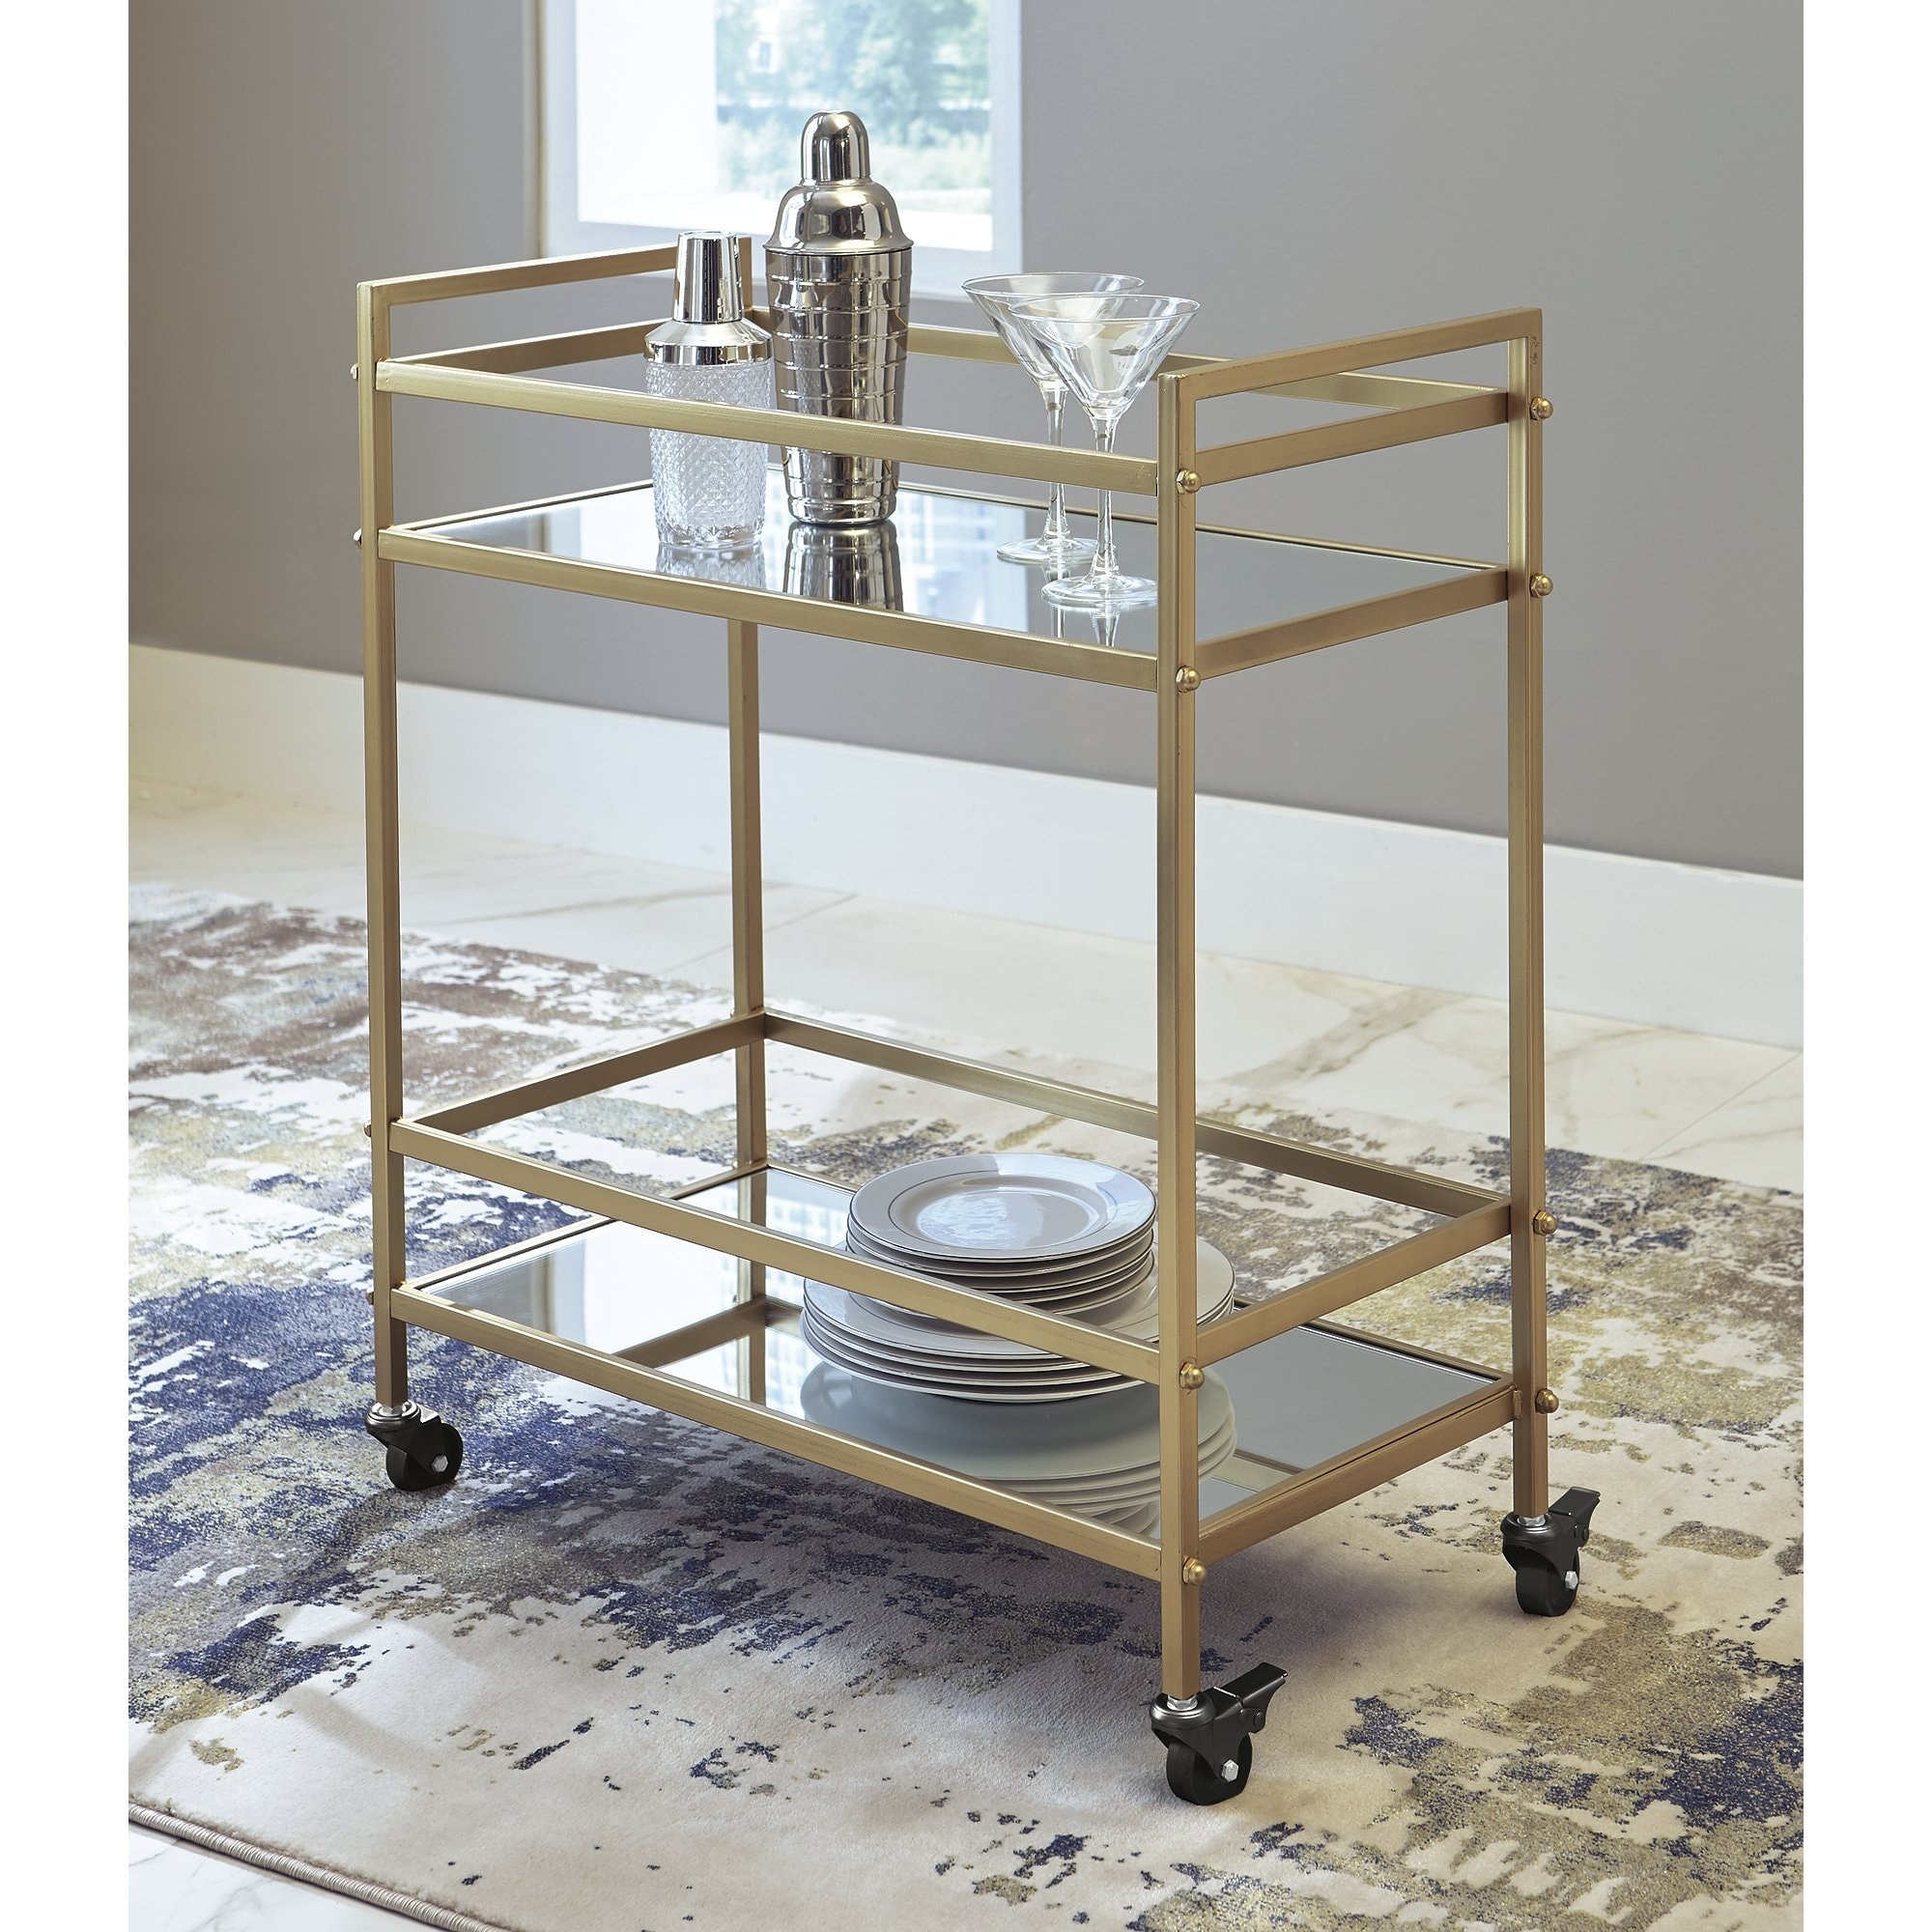 Kailman Contemporary Bar Cart In Metallic Gold On Sale Overstock 22670756